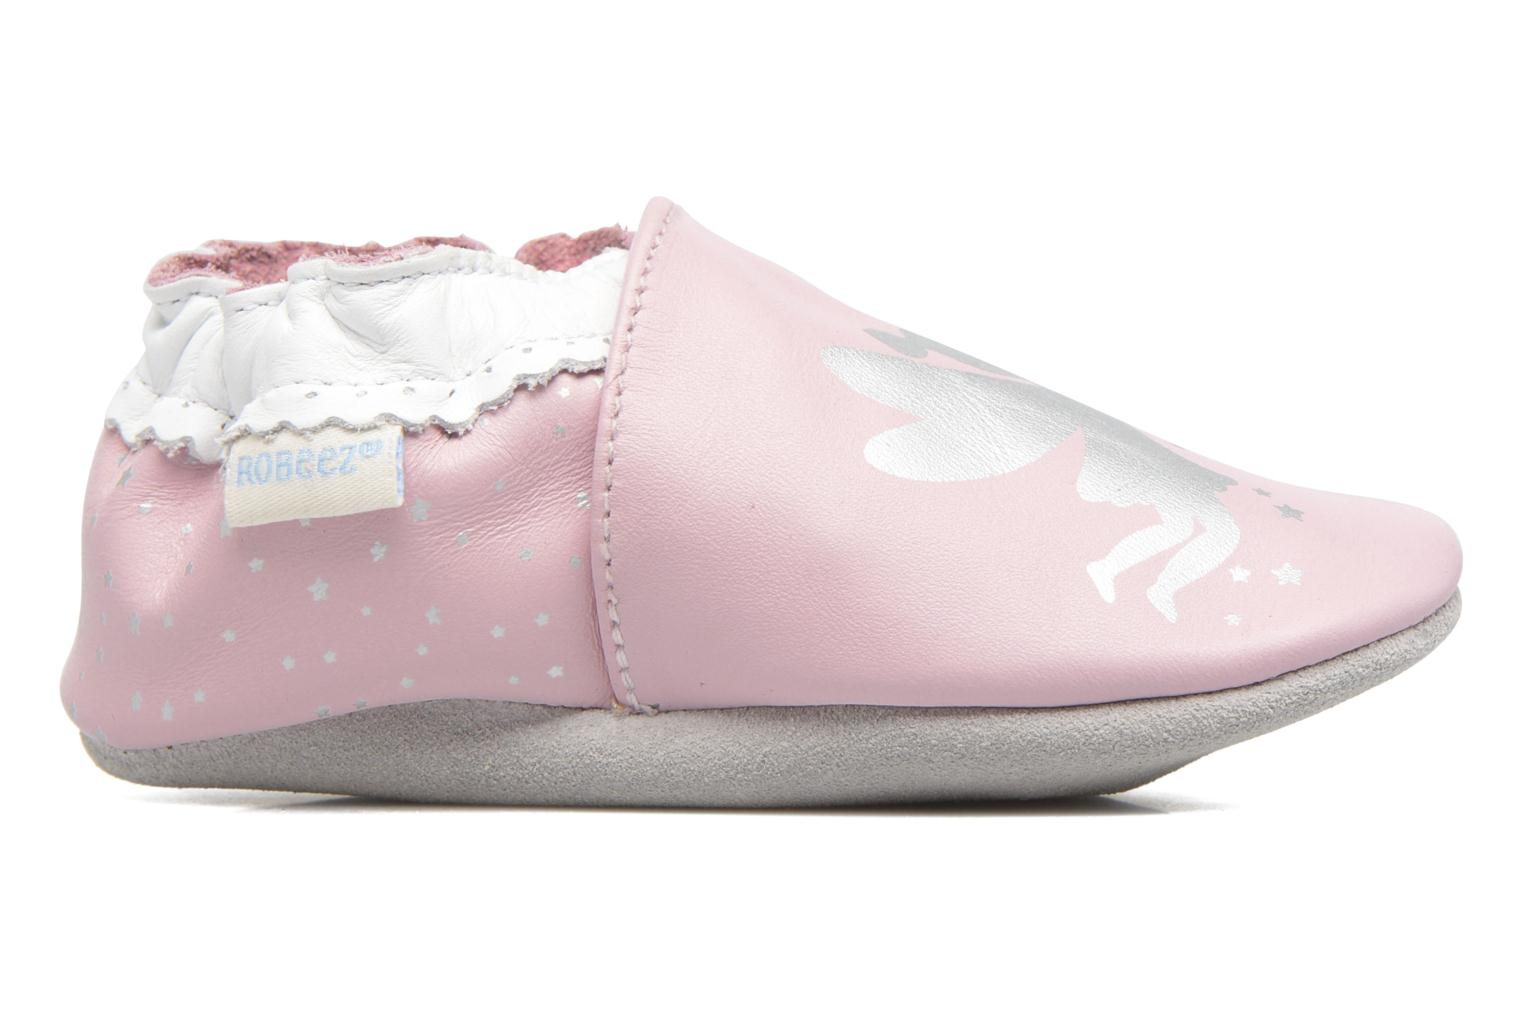 Slippers Robeez Fairy Dream Pink back view